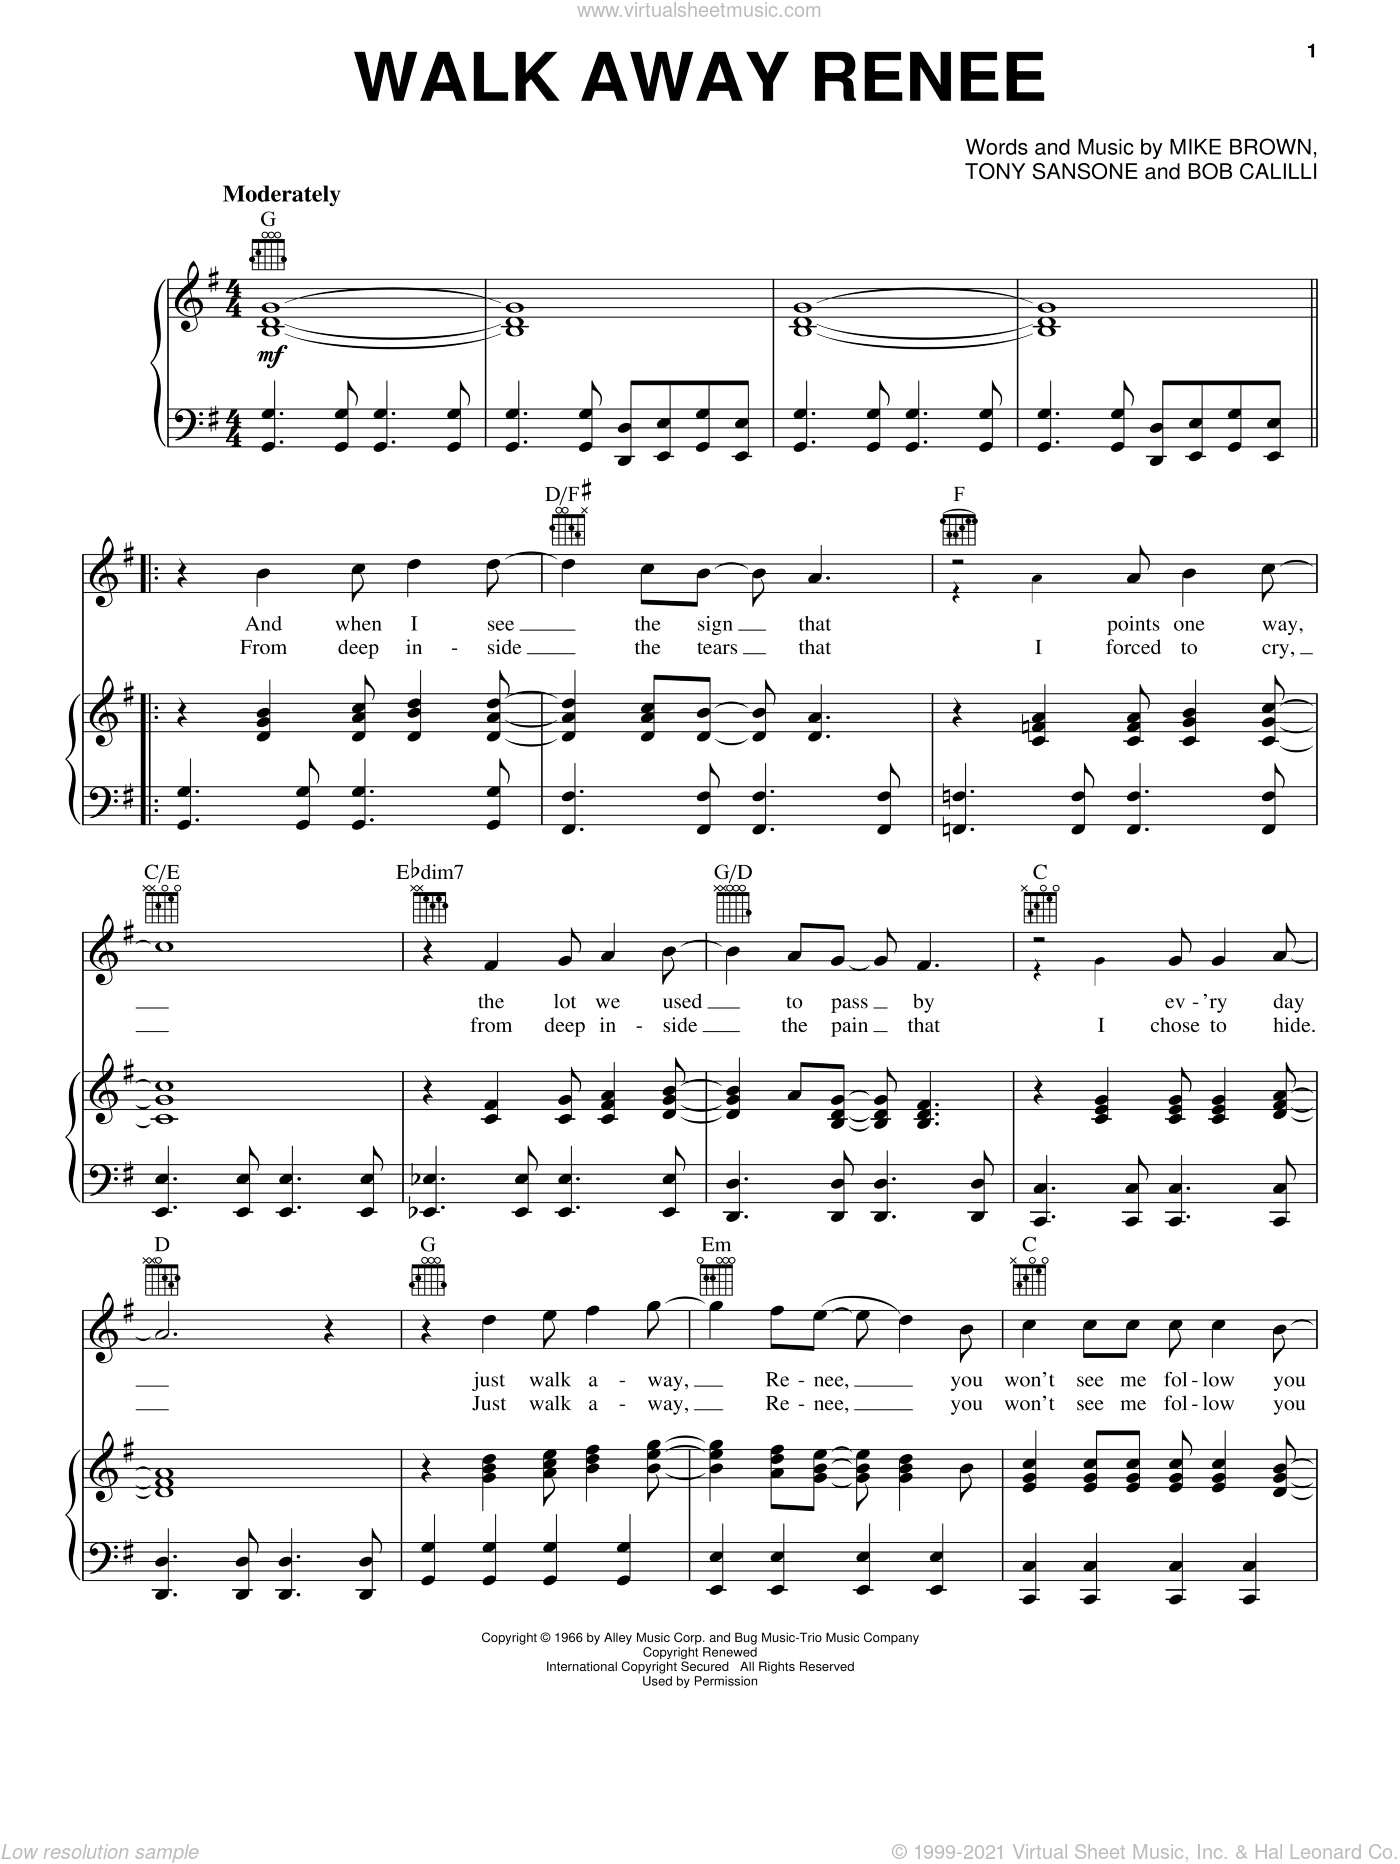 Walk Away Renee sheet music for voice, piano or guitar by Tony Sansone, The Four Tops and Bob Calilli